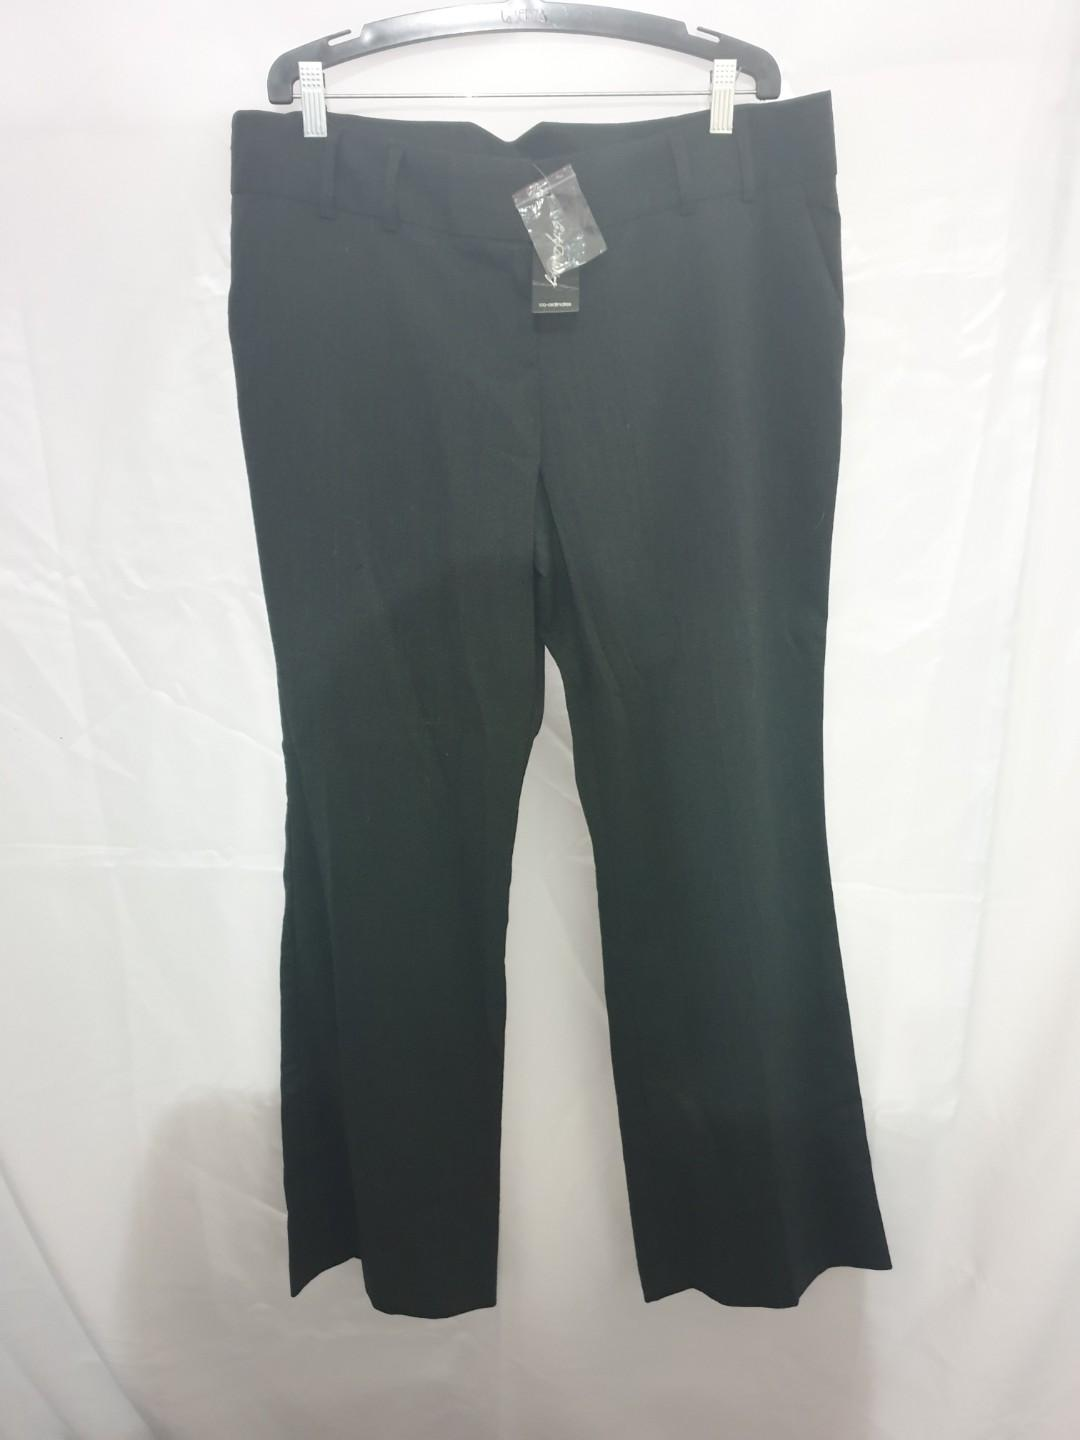 NEW! SIZE 16 rrp. $44.99 grey corporate /suit pants #52